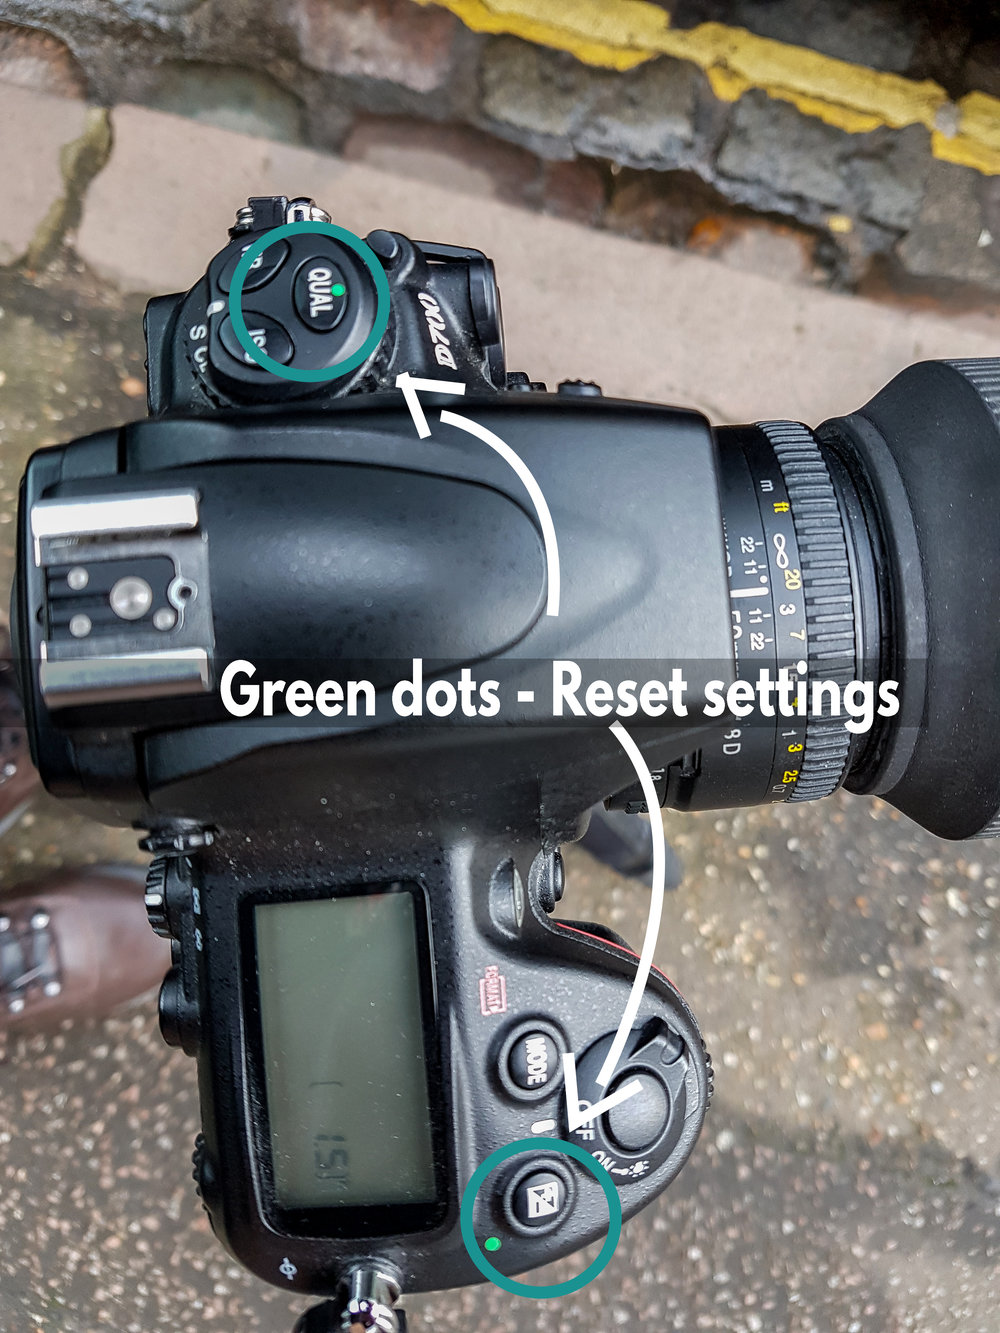 Green dots - Reset settings - Pressing and holding the relevant buttons with the green dots depicted will reset your settings back to the default. Here they are on my Nikon D700.